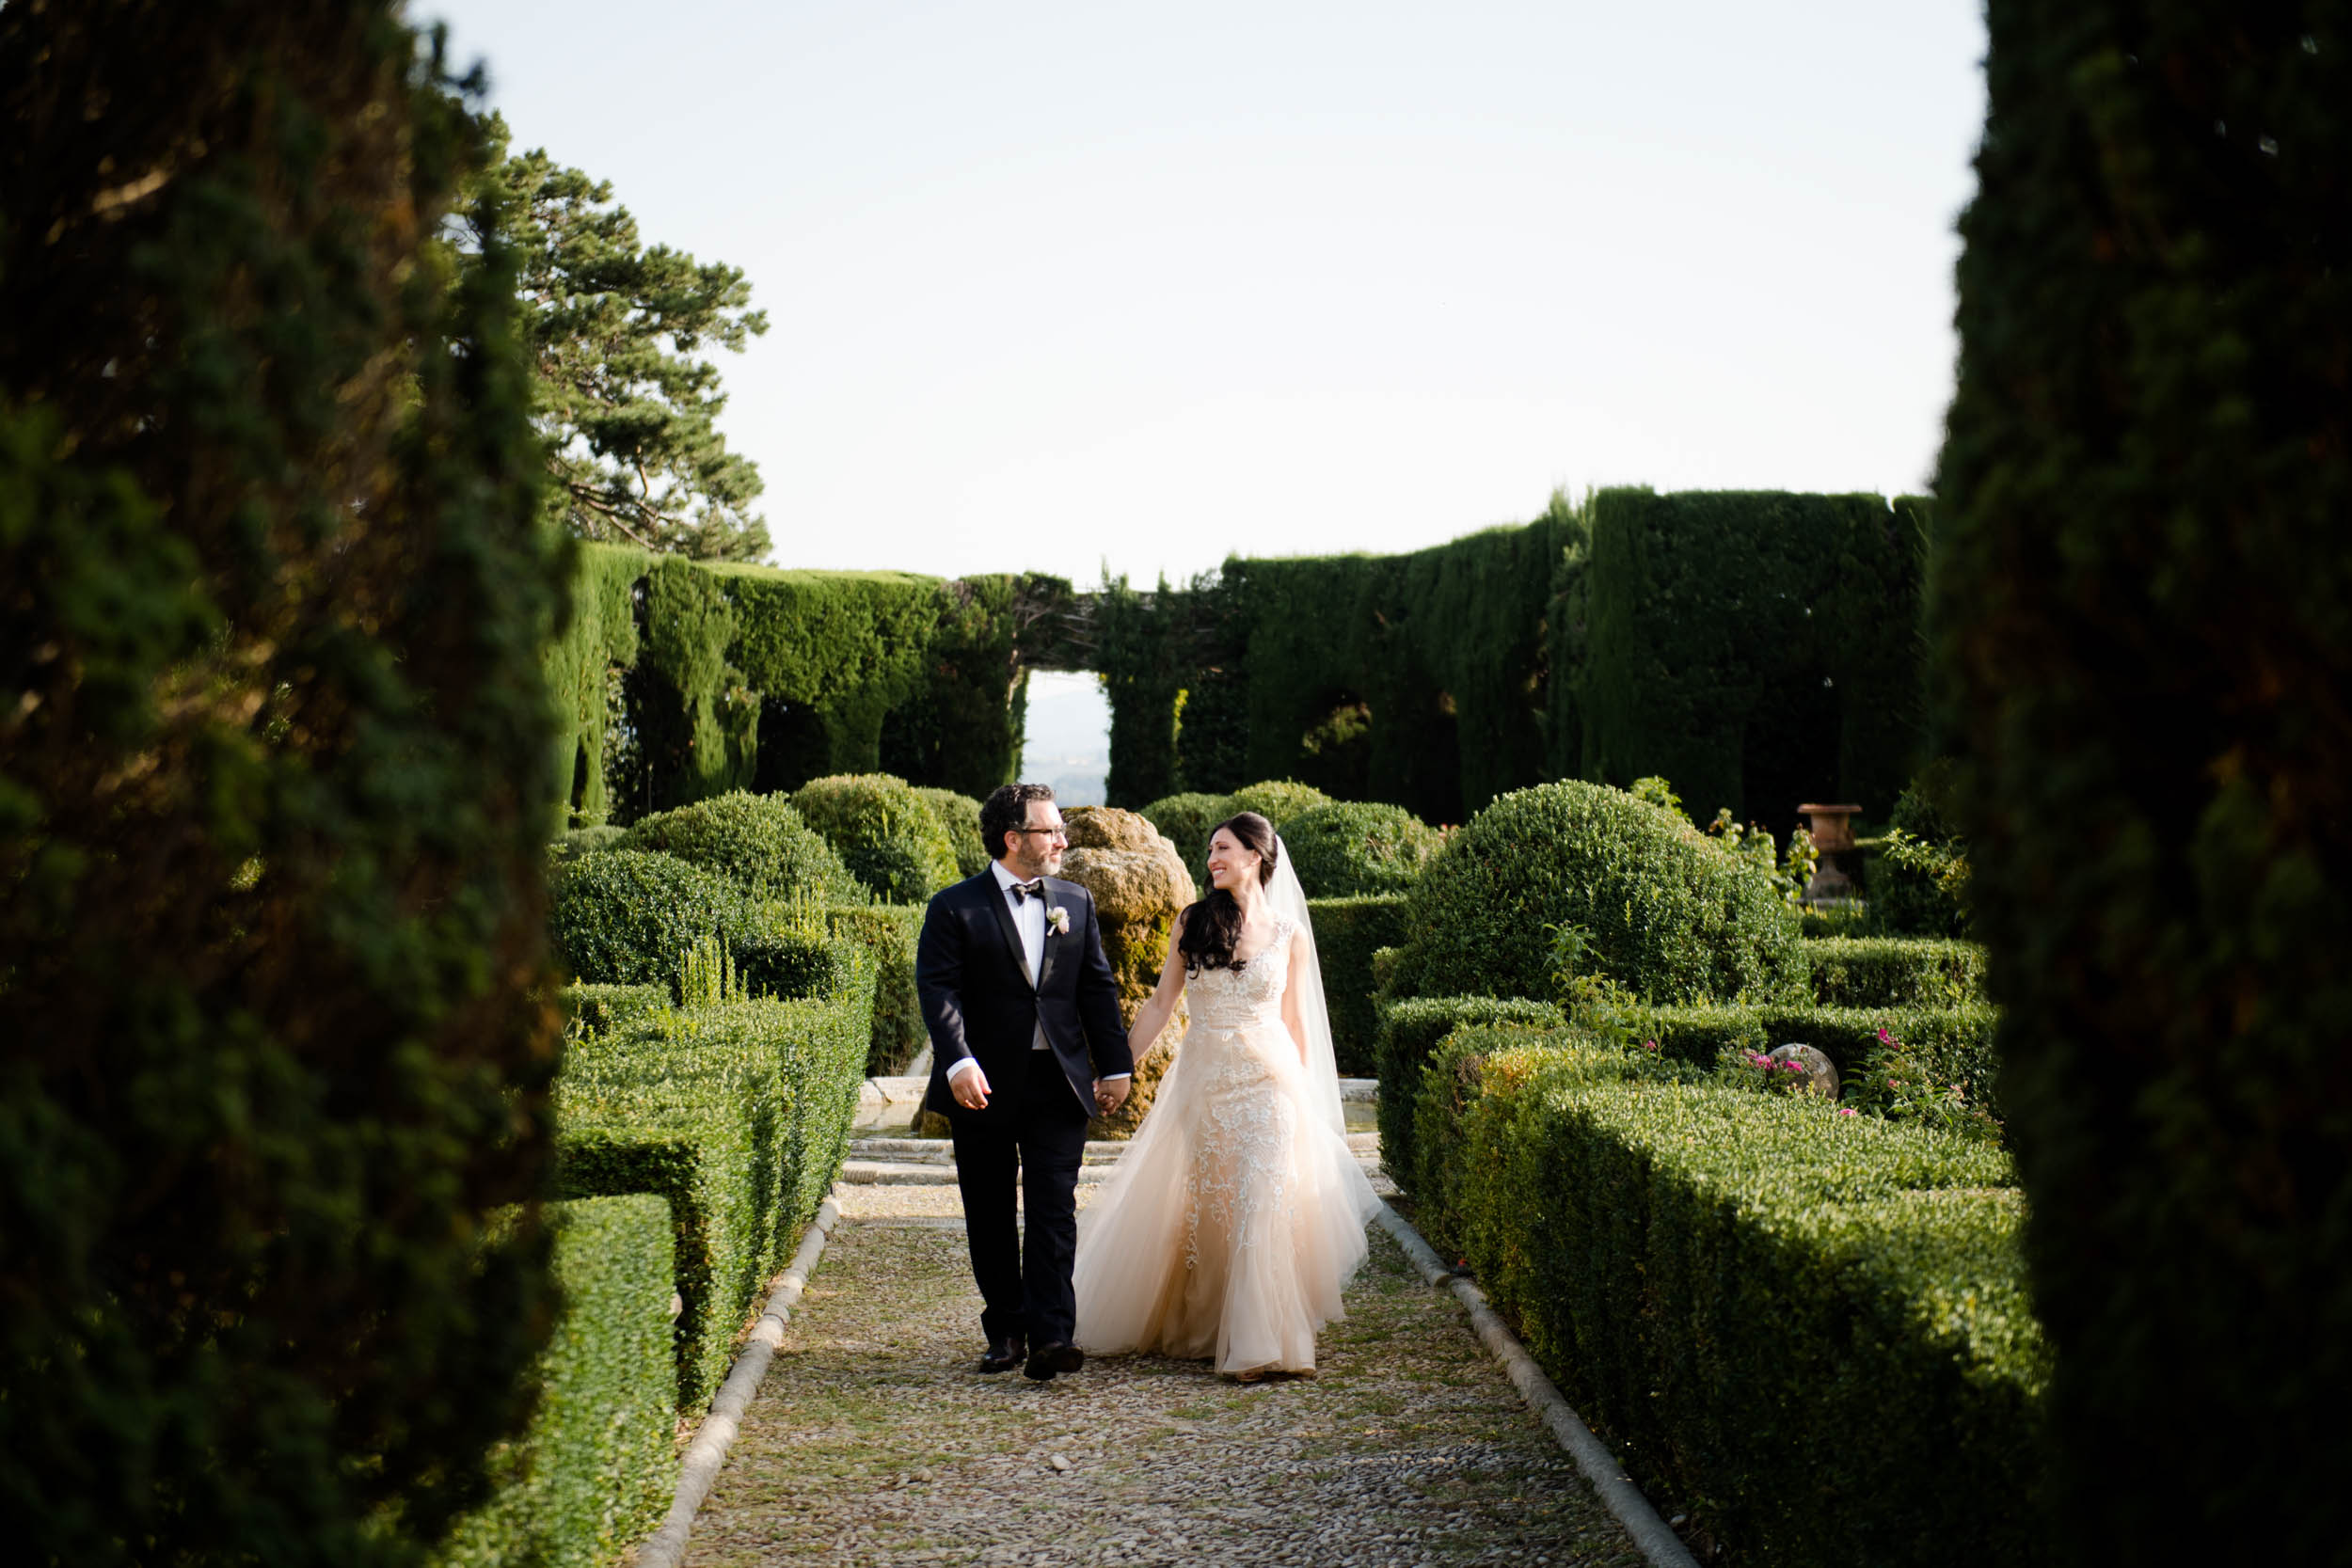 Destination wedding venues in Florence, Italy